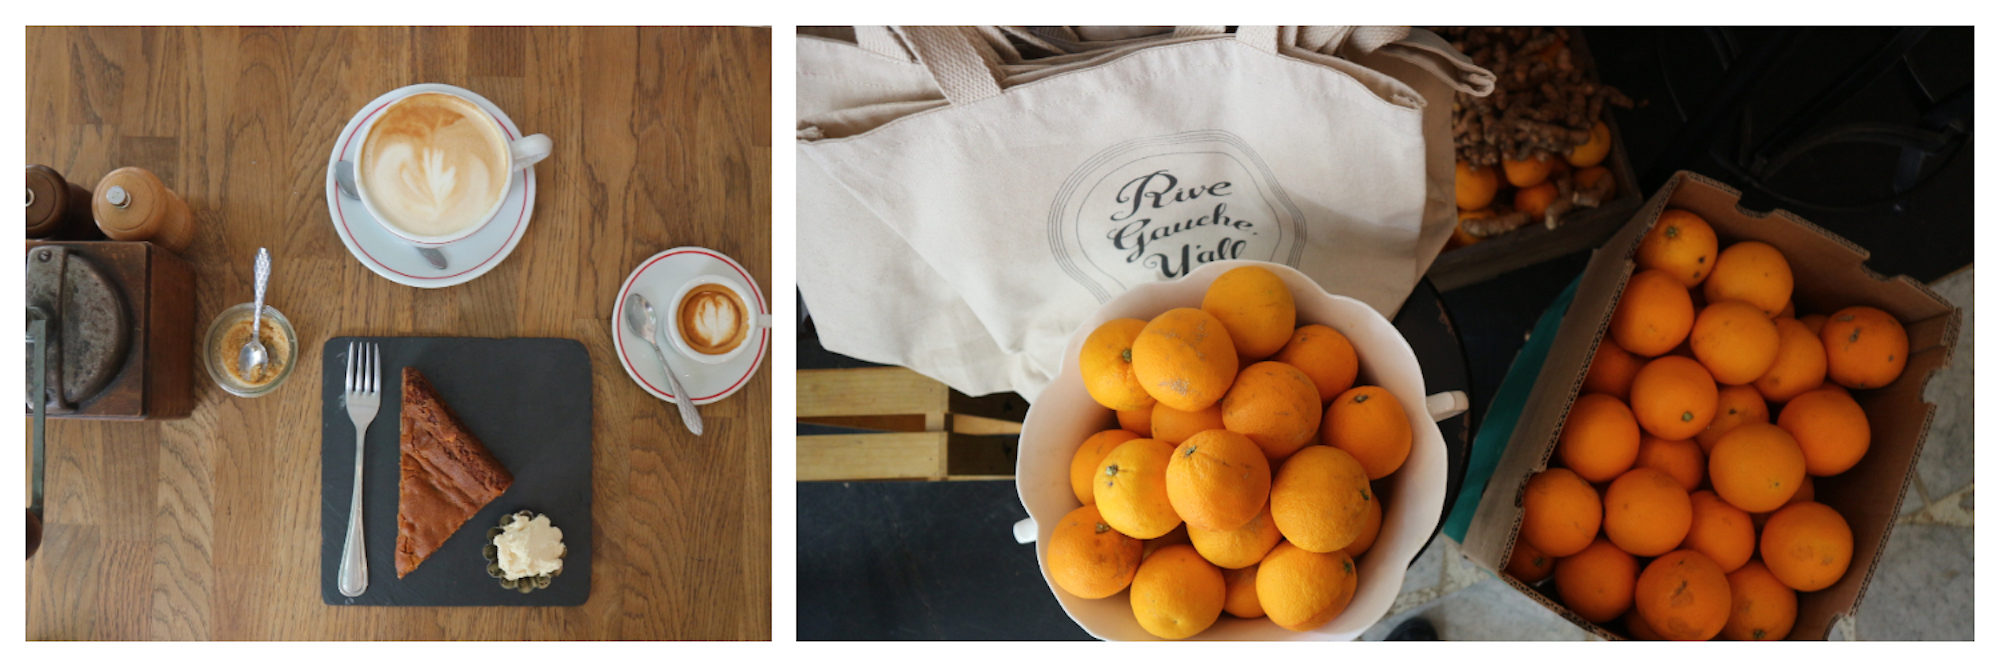 Warm home-made chocolate cake with ice cream on a slate plate with creamy coffee on a wooden table (left) and bowls of fresh oranges with a white tote bag (right) at Treize au Jardin coffee shop in Paris